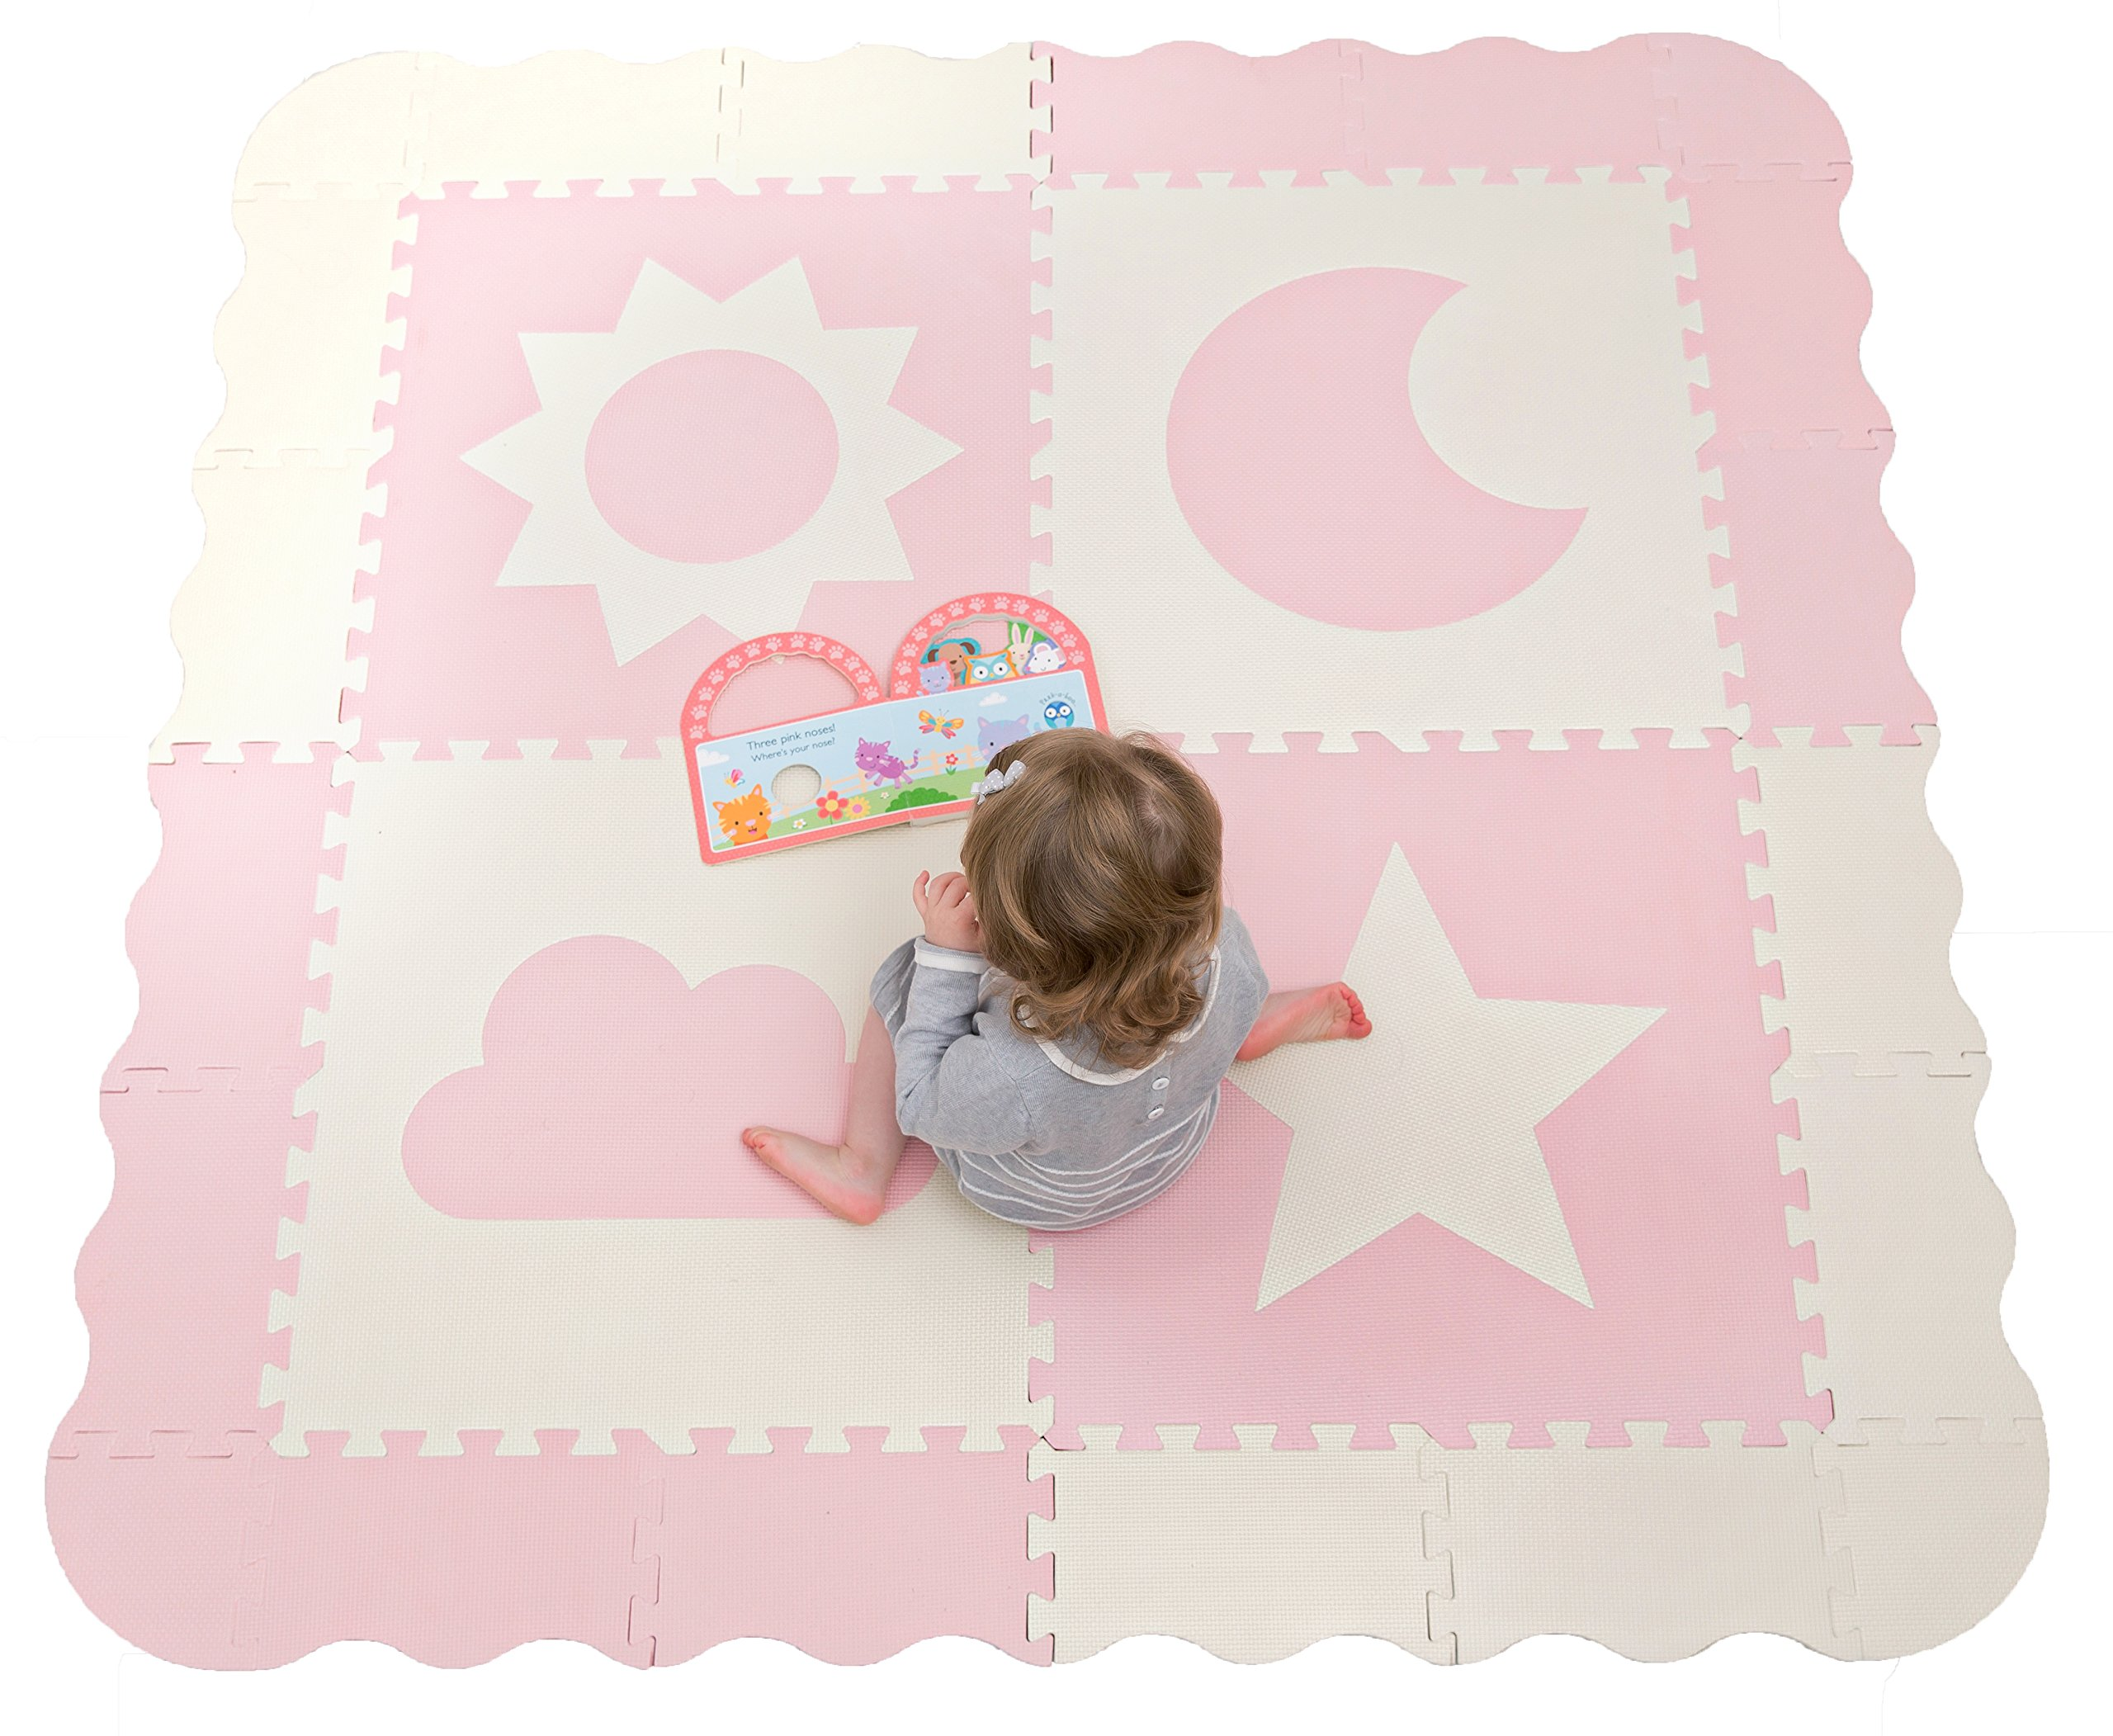 "Interlocking Foam Baby Play Mat Tiles - Non-Toxic, Extra Large Thick Floor Squares, 61"" x 61"" Pink & White Playroom & Nursery Mat, Safe & Protective For Infants, Toddlers, Kids"